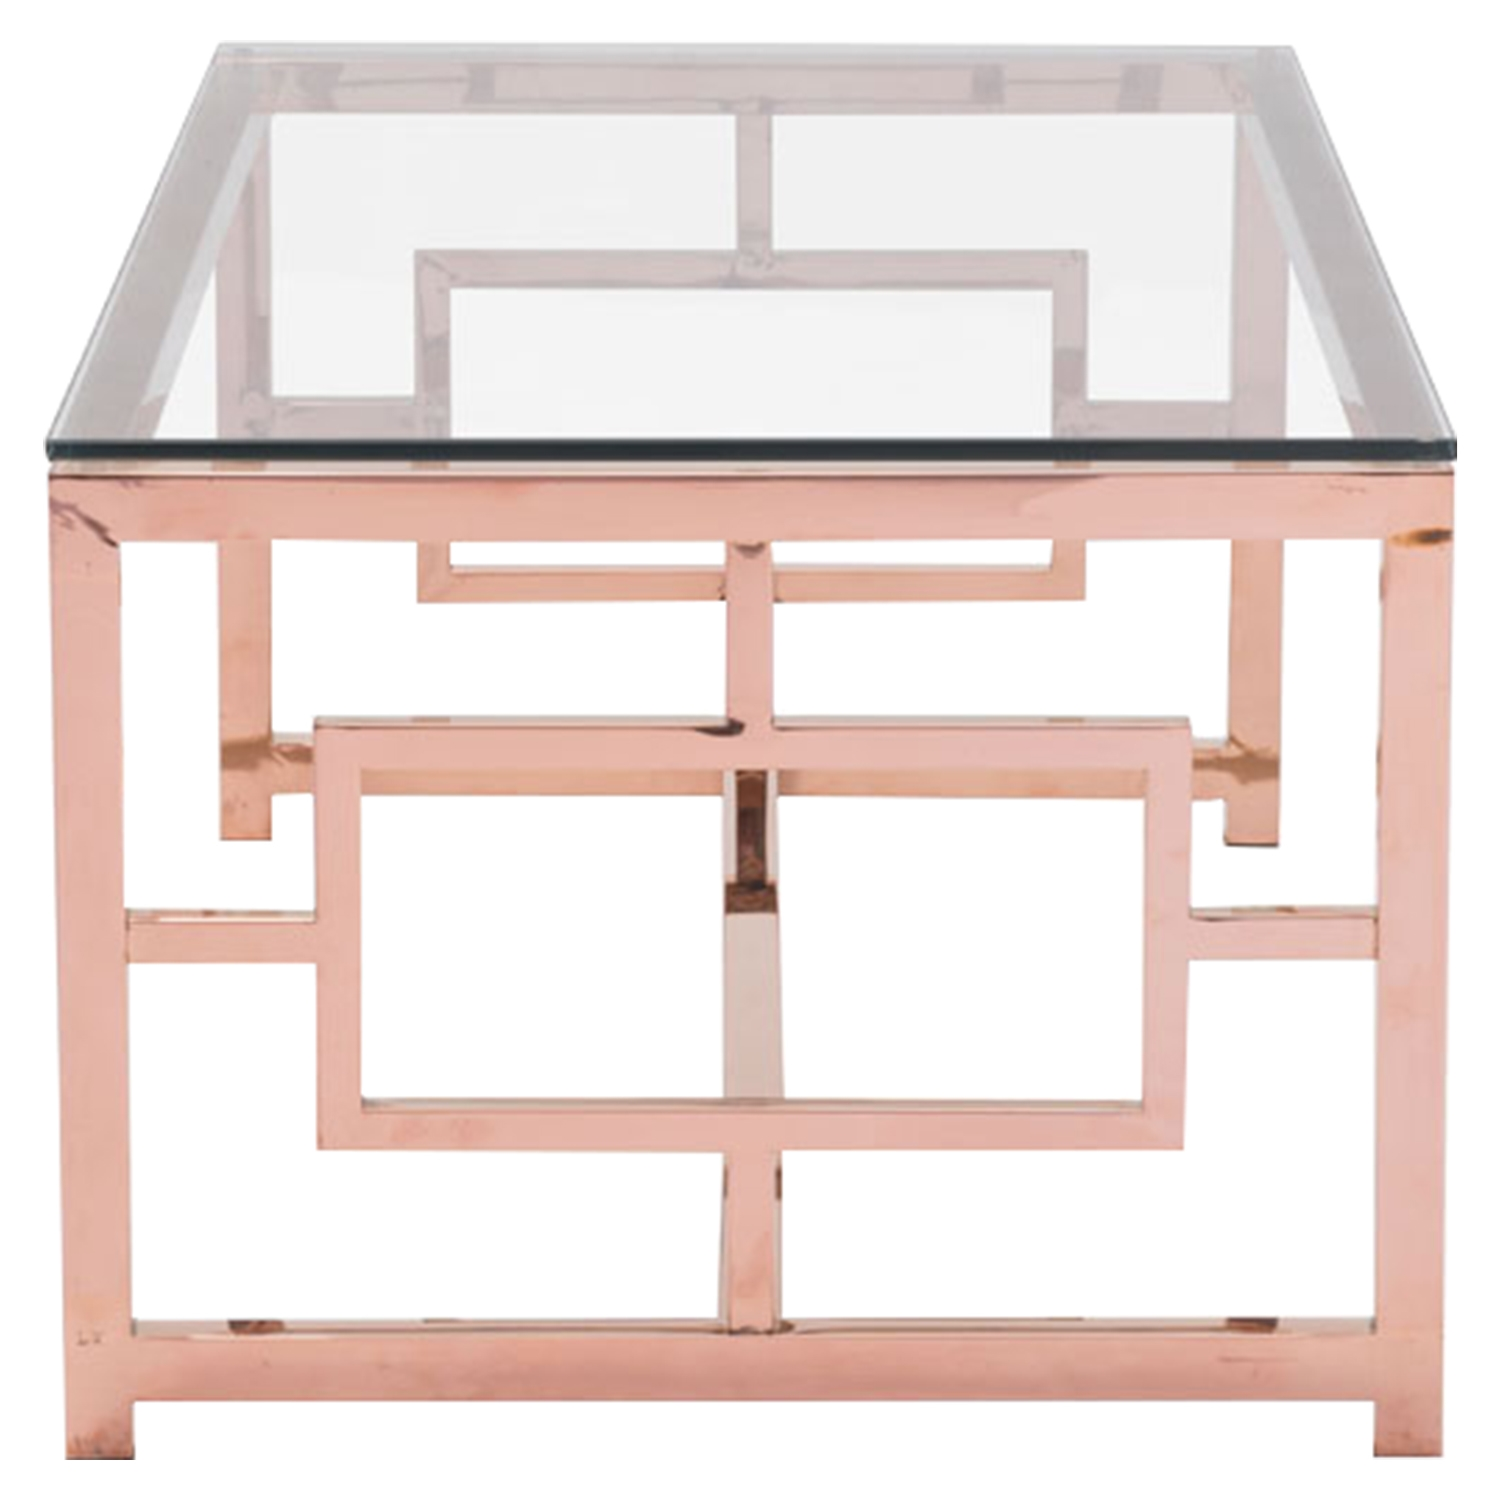 Geranium Coffee Table - Glass Top, Rose Gold - ZM-100184